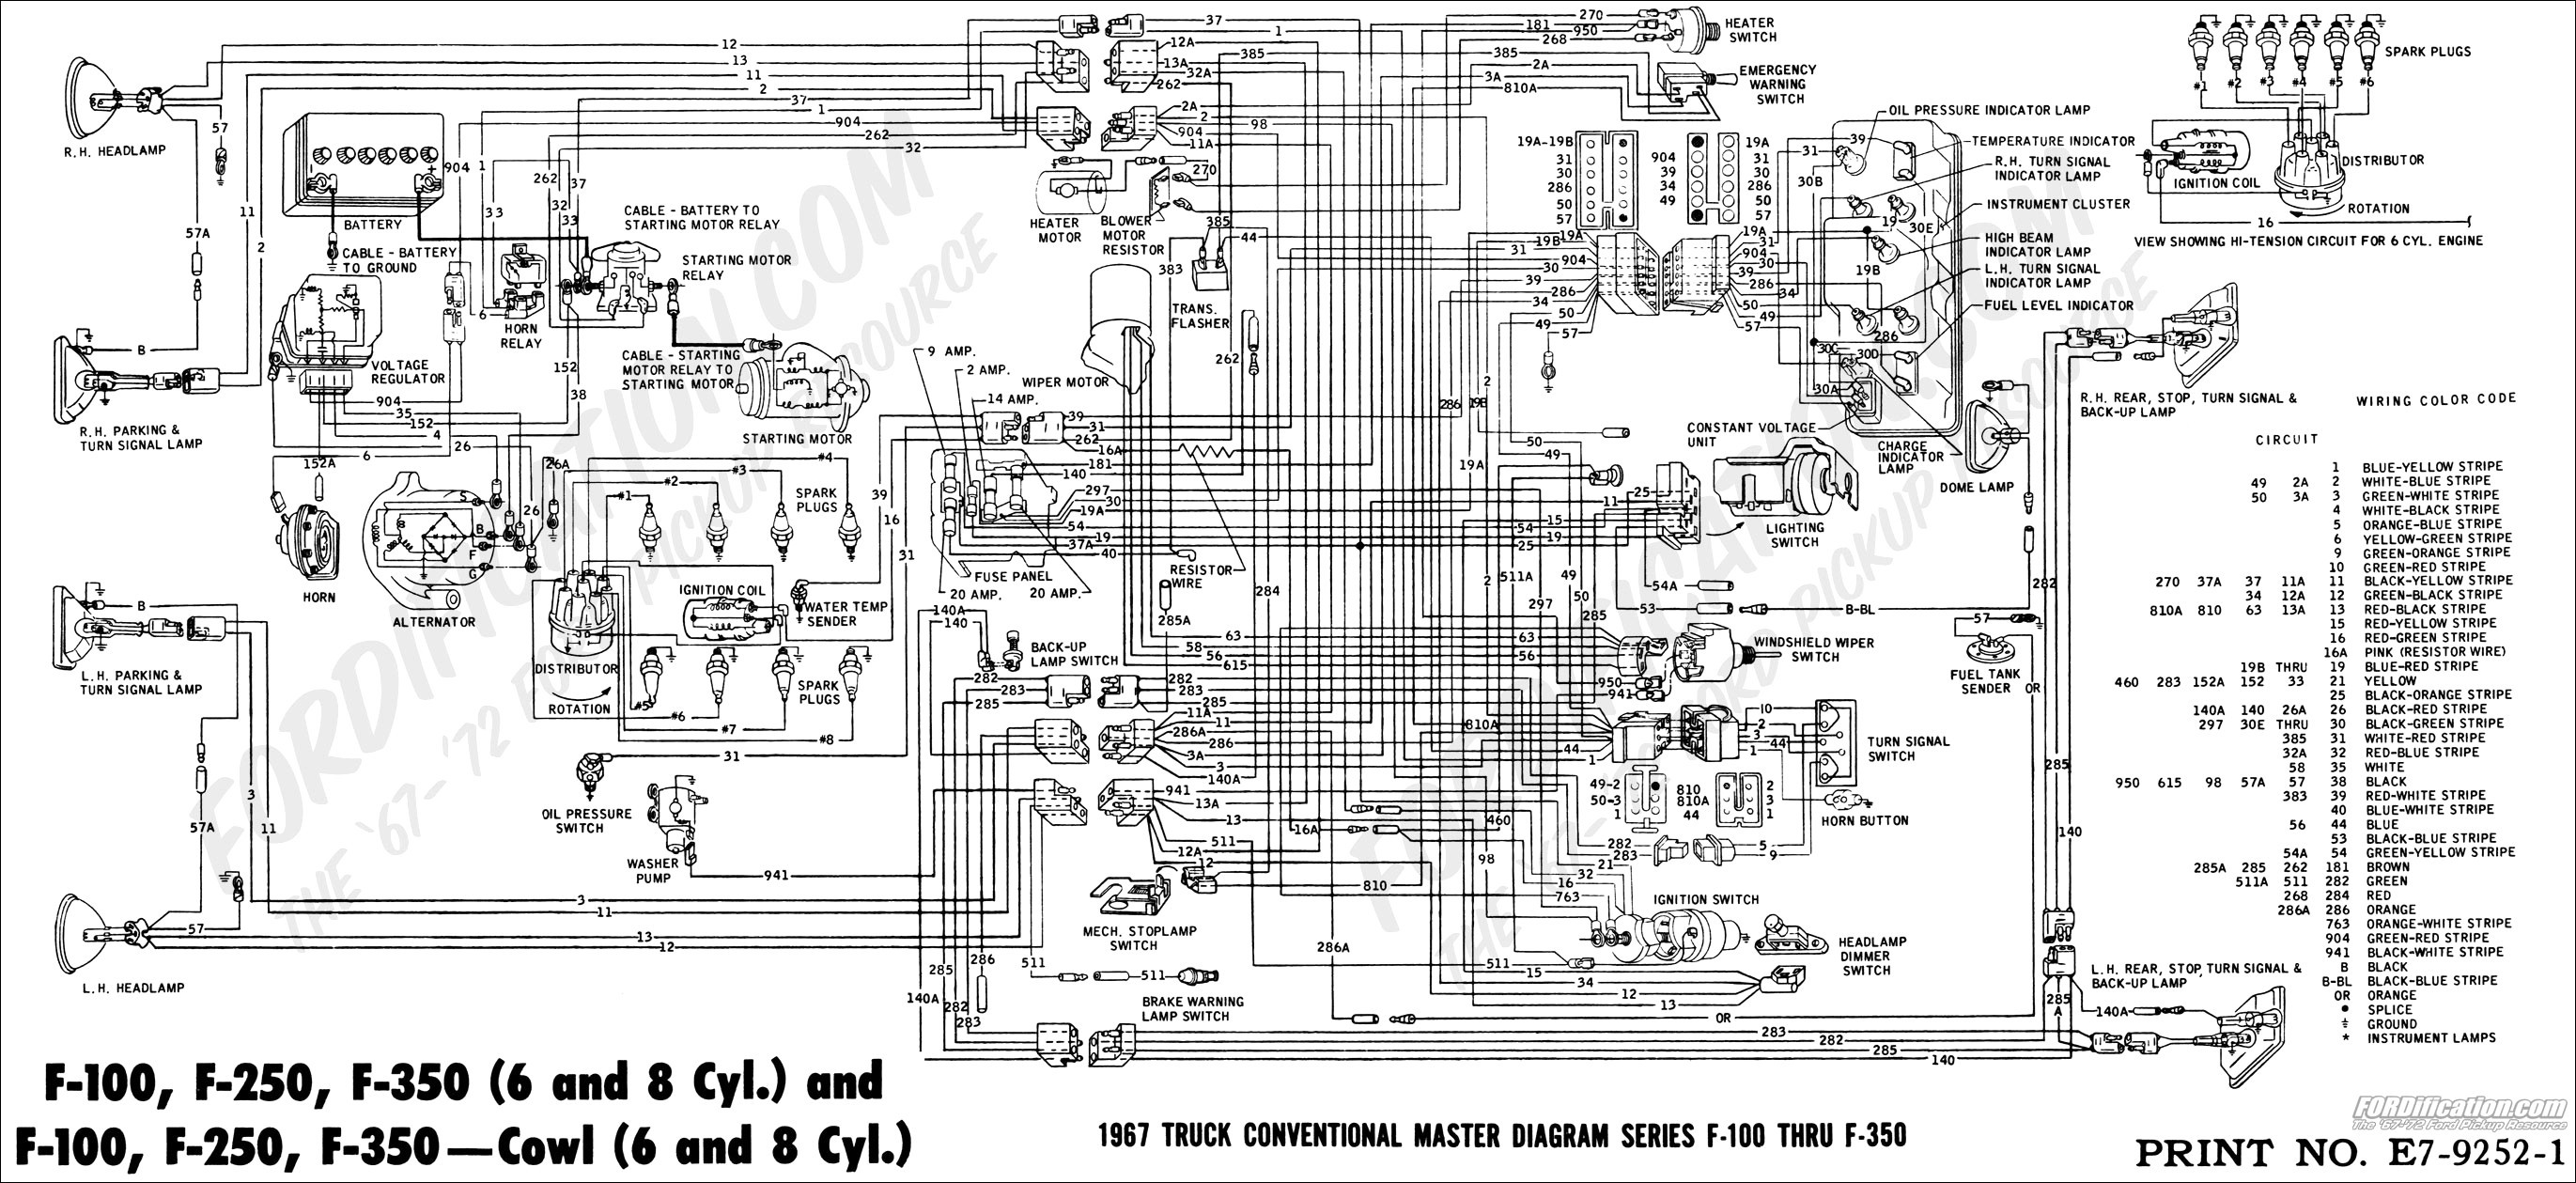 92 ford super duty wiring diagram smart wiring diagrams u2022 rh emgsolutions co 2011 ford f250 super duty wiring diagram 2011 ford super duty trailer wiring diagram